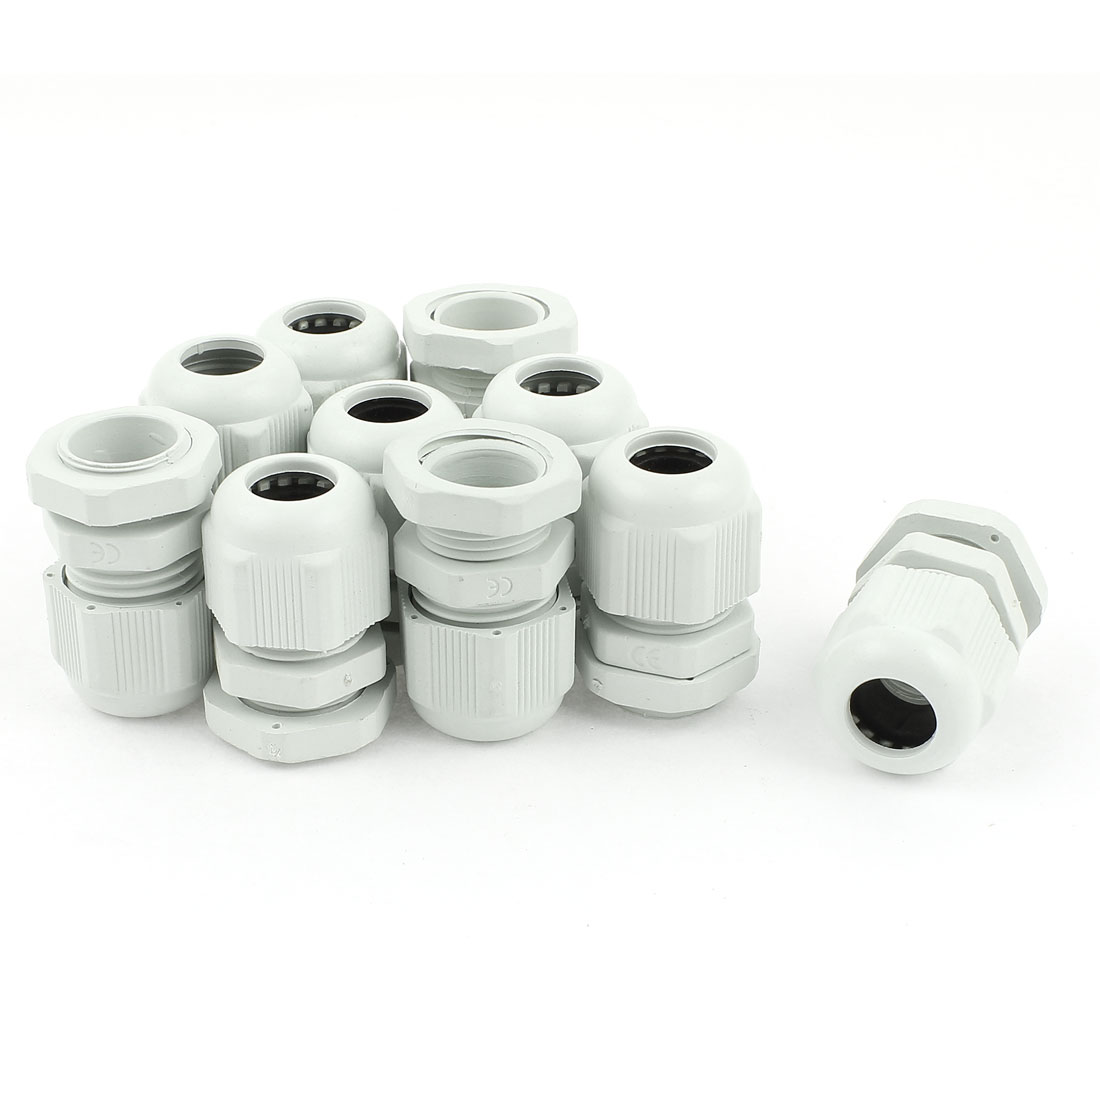 10 Pcs 5mm-10mm Diameter Cord Cable Glands Plastic Fastener Connector PG11 White